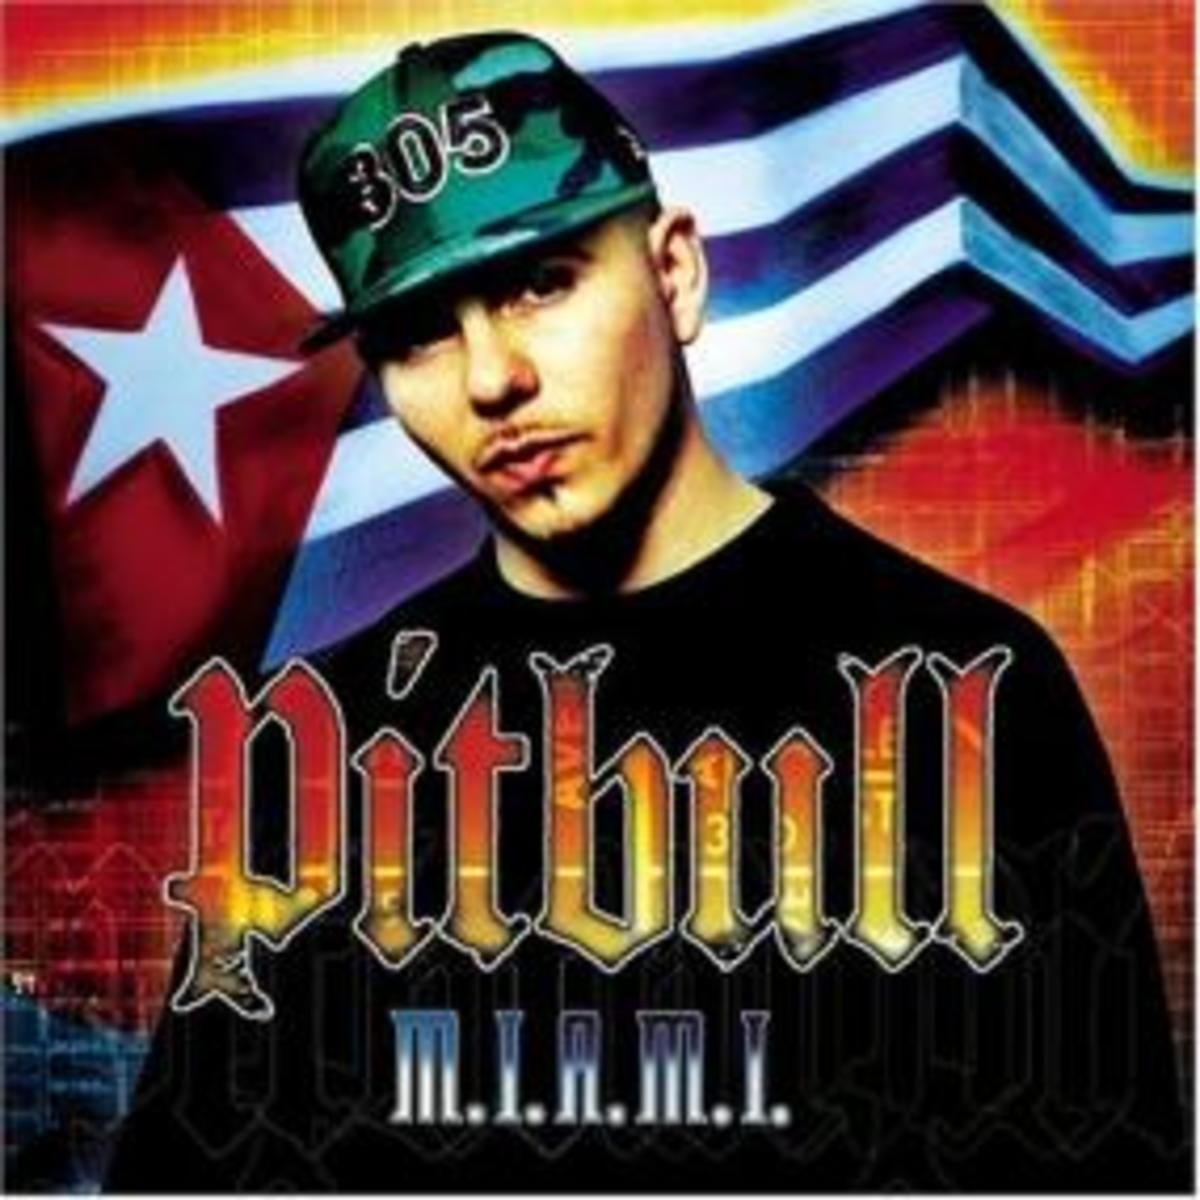 Pitbull's early albums weren't commercial successes